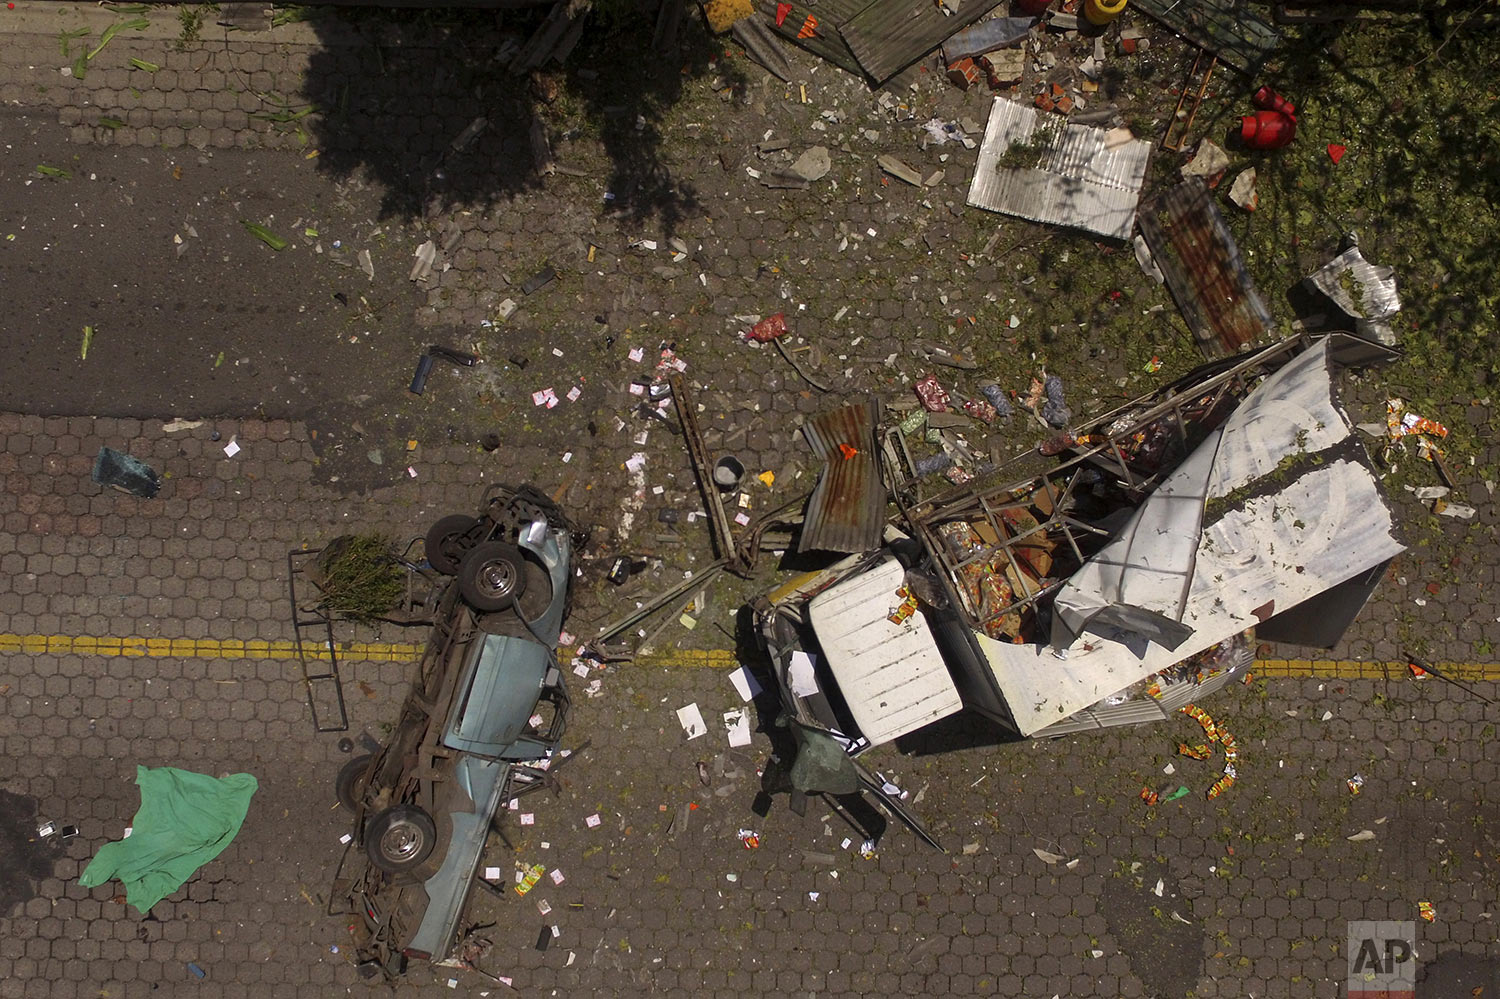 Trucks and debris lie scattered after a deadly explosion of propane gas cylinders at a depot in Mejicanos, El Salvador, Friday, July 12, 2019. Defense Minister Rene Merino visiting the site said that early indications suggested the explosion was accidental, but that authorities are still investigating any possible connection to terrorism by the gangs. (AP Photo/Salvador Melendez)